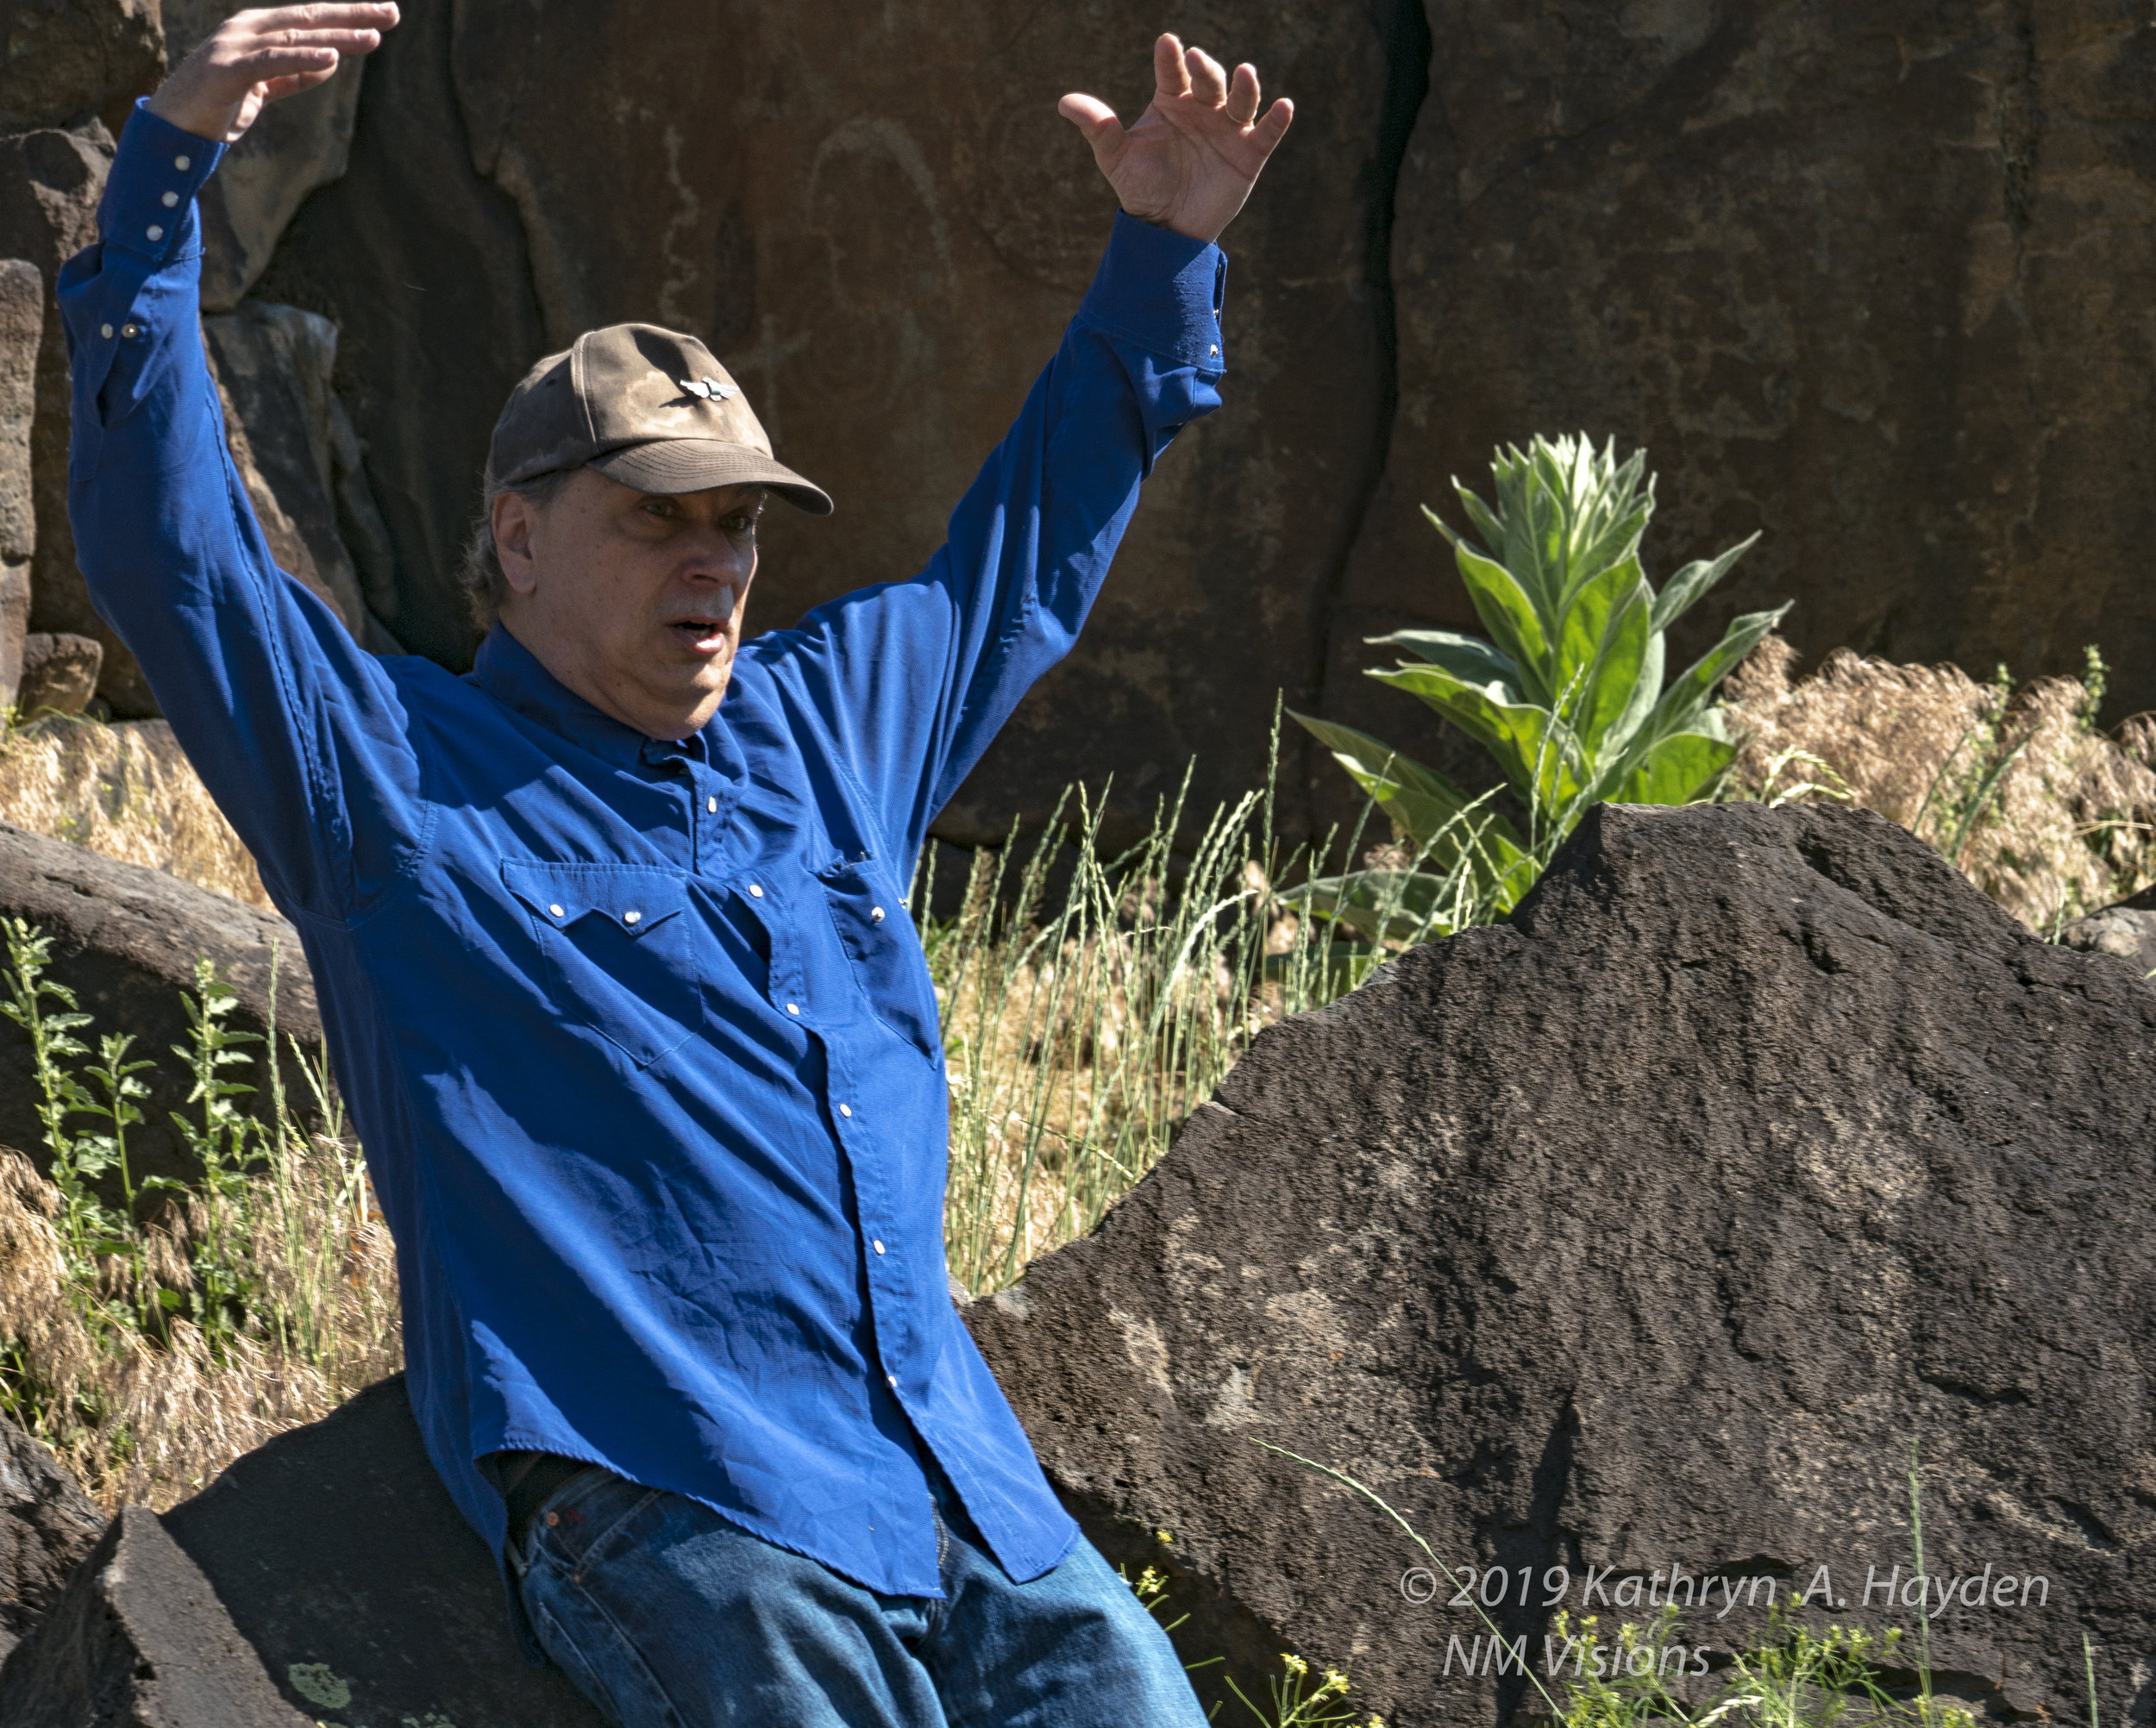 Robert demonstrates the view of the owl with wings spread that is on rock behind him